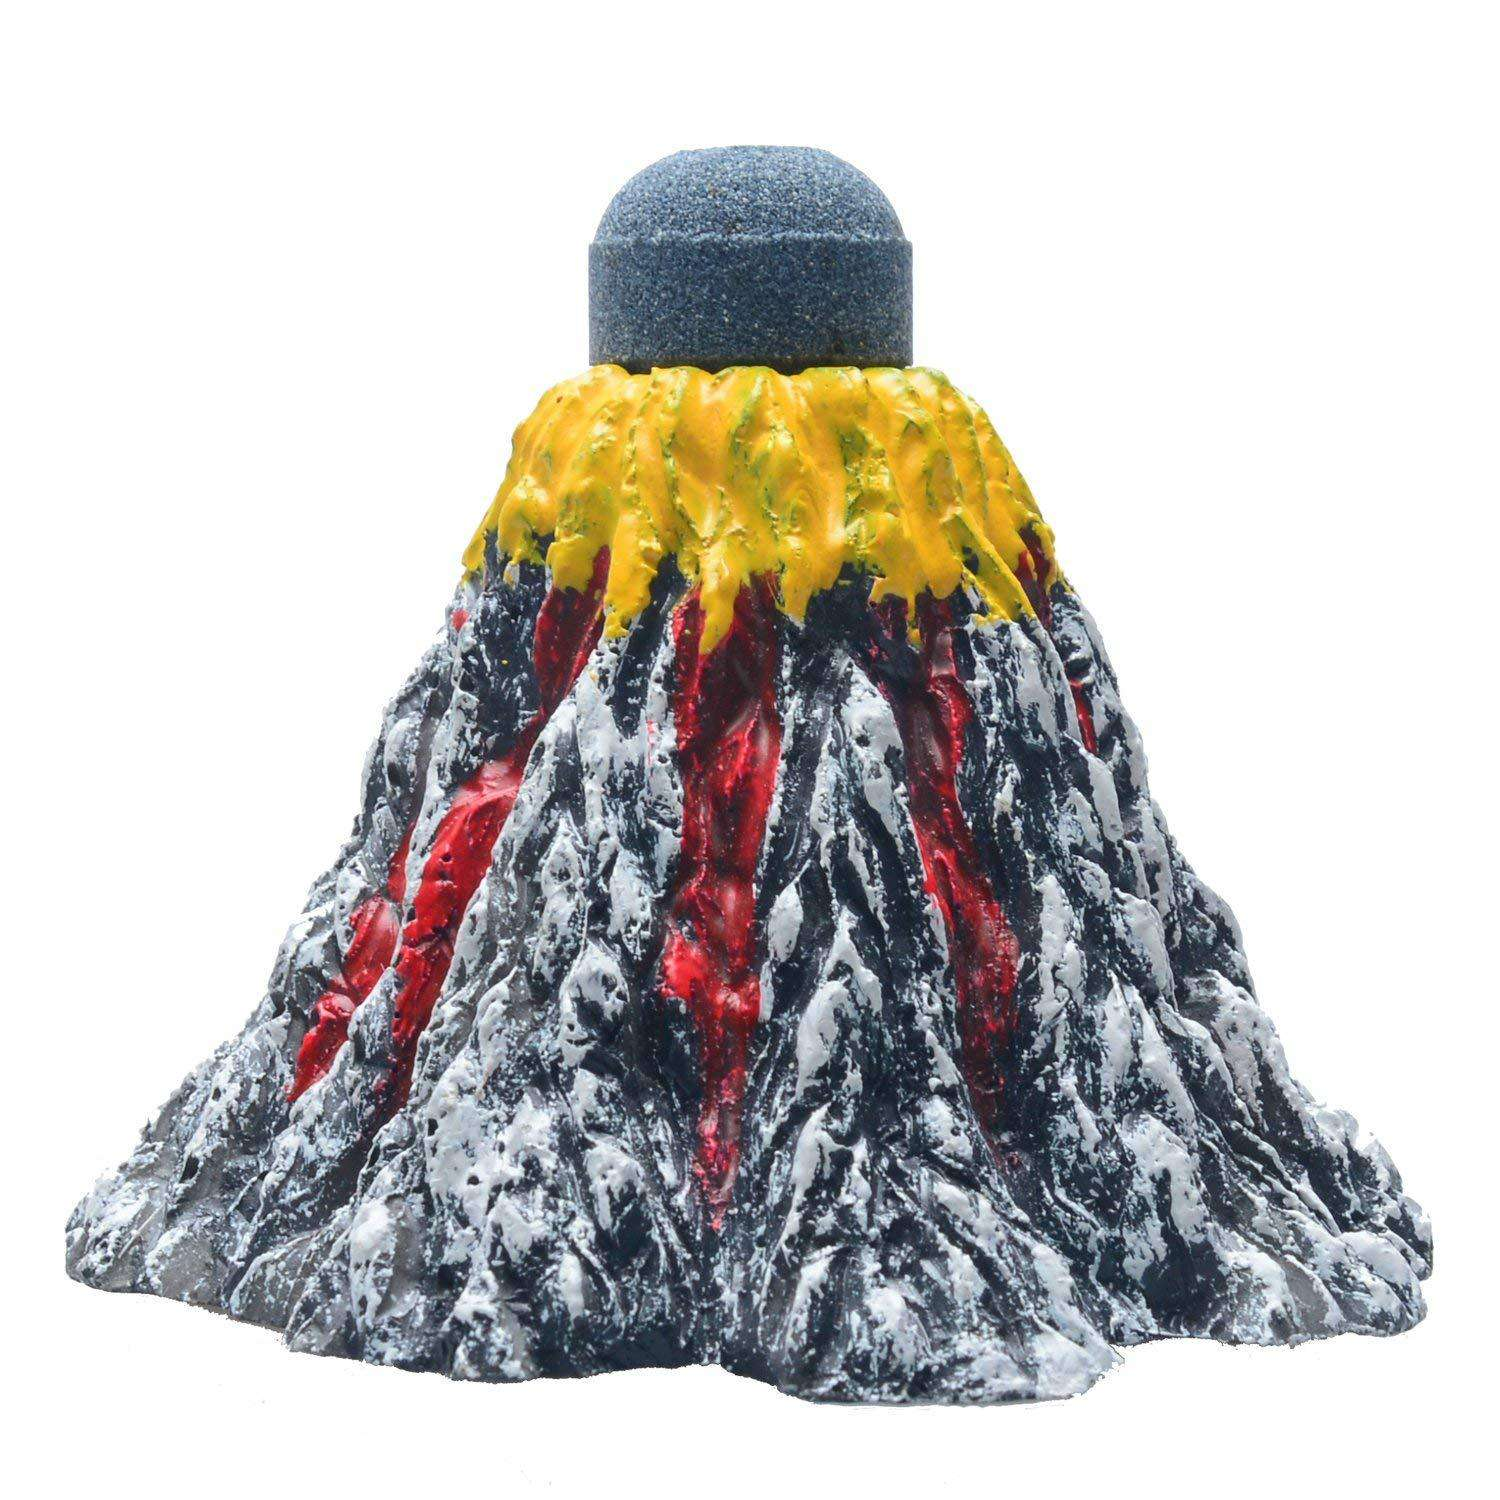 Uniclife Aquarium Volcano Ornament Kit with Air Stone Bubbler Fish Tank Decorations